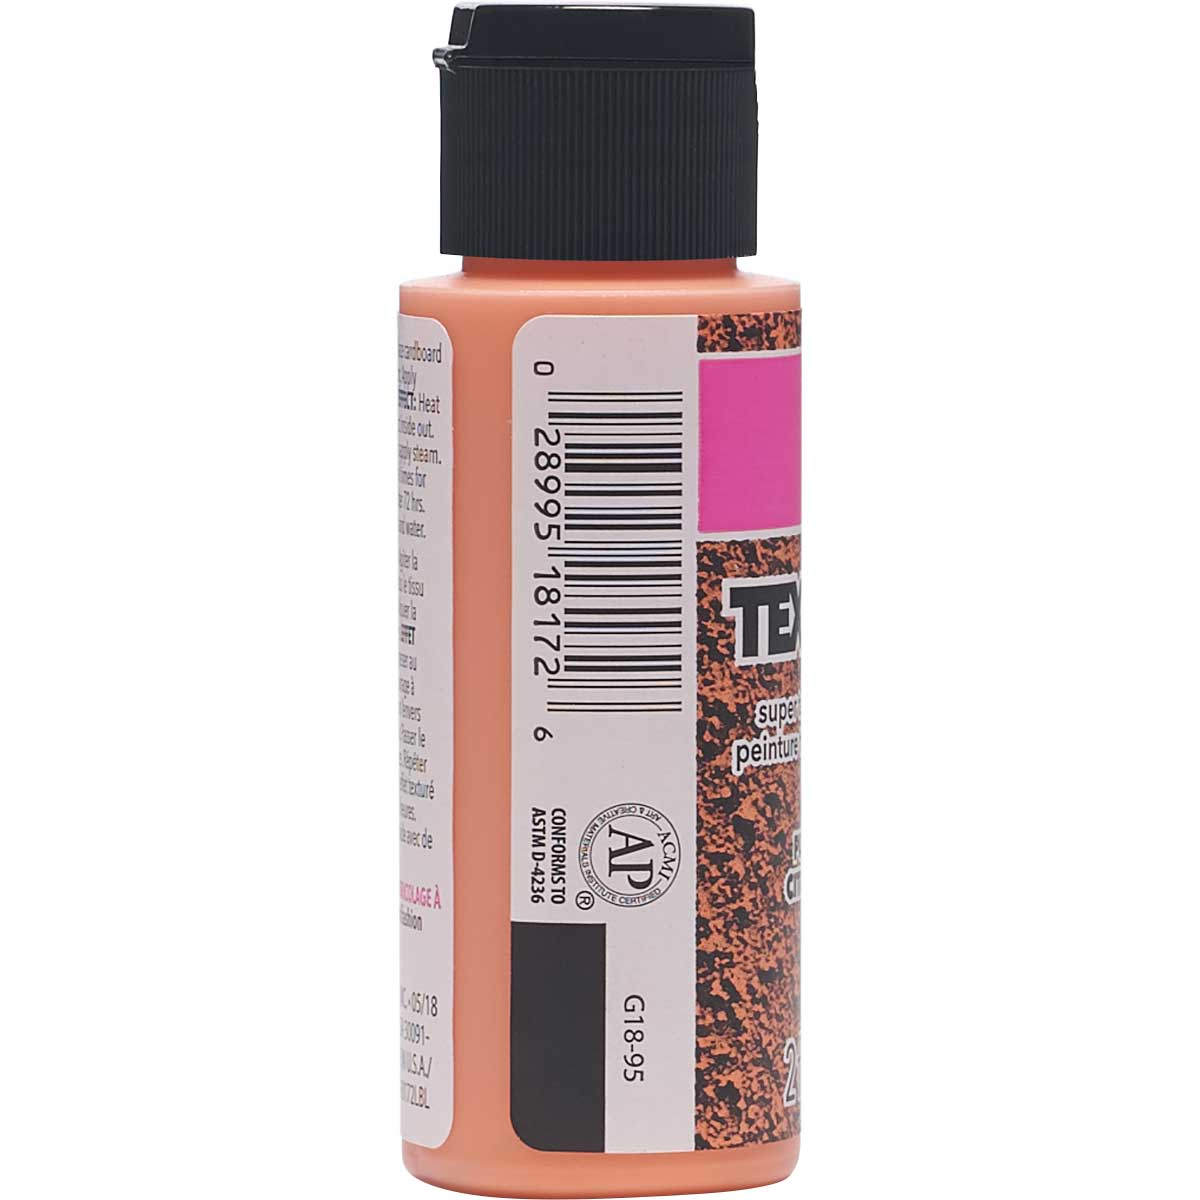 LaurDIY ® Texturific™ Fabric Paint - Pumpkin Spice, 2 oz.